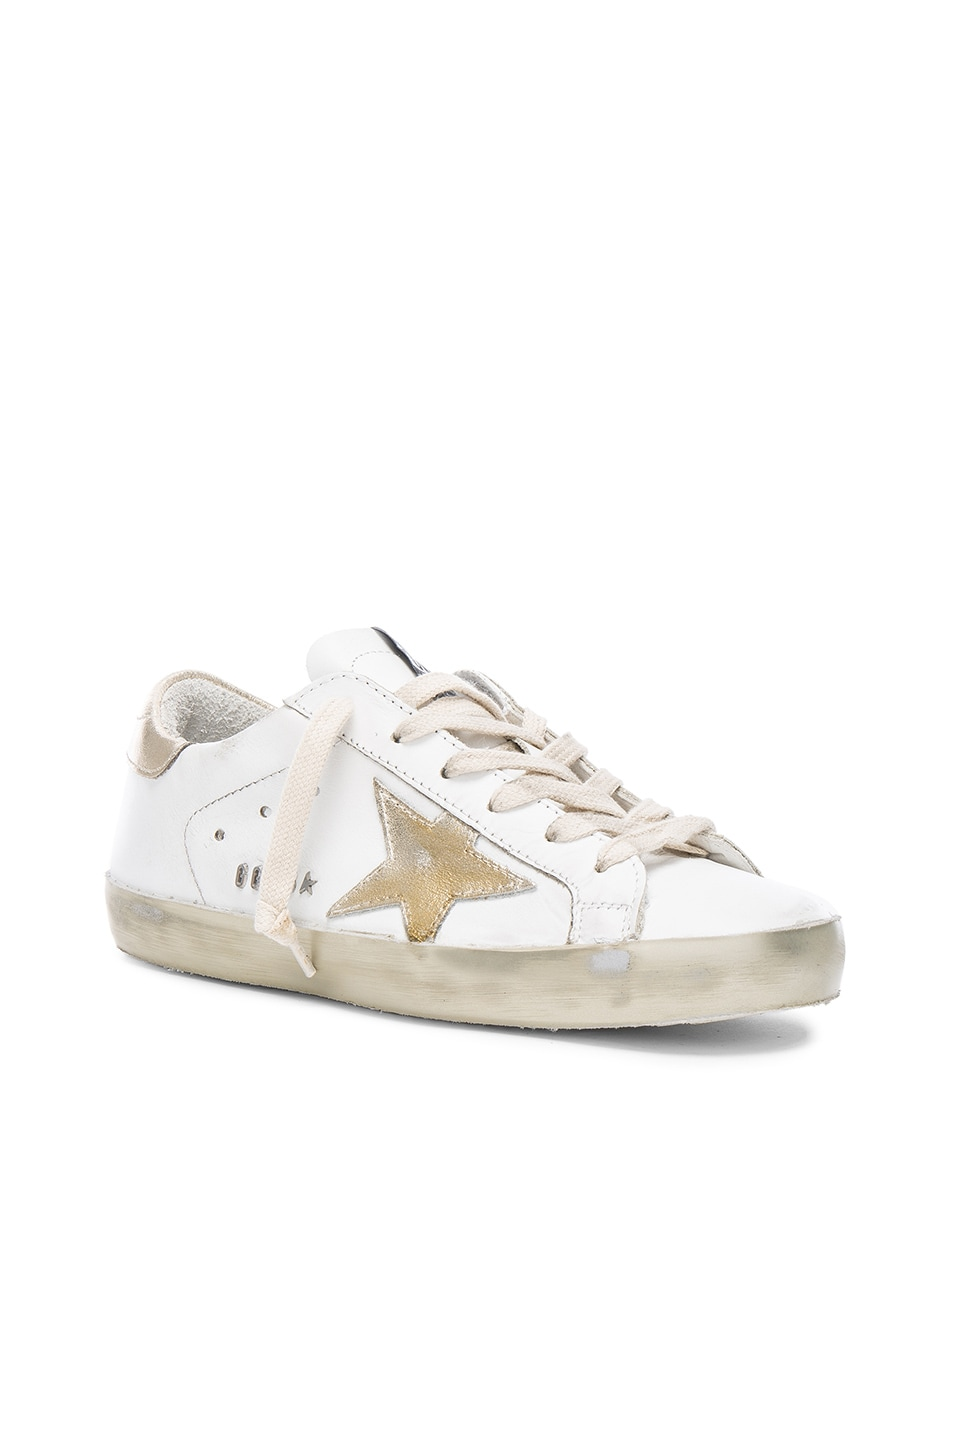 Image 2 of Golden Goose Leather Superstar Low Sneakers in Sparkle White & Gold Star